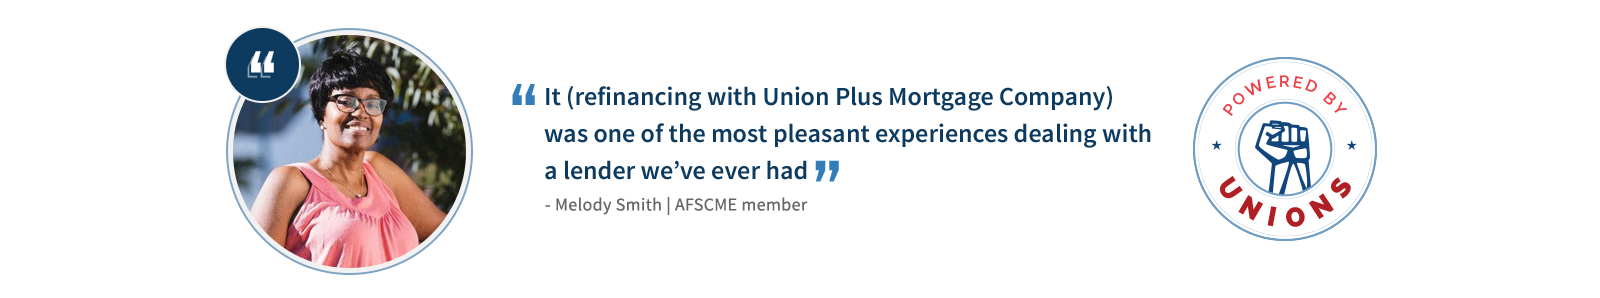 Union Plus Benefits >> Union Mortgages With Exclusive Benefits For Union Members